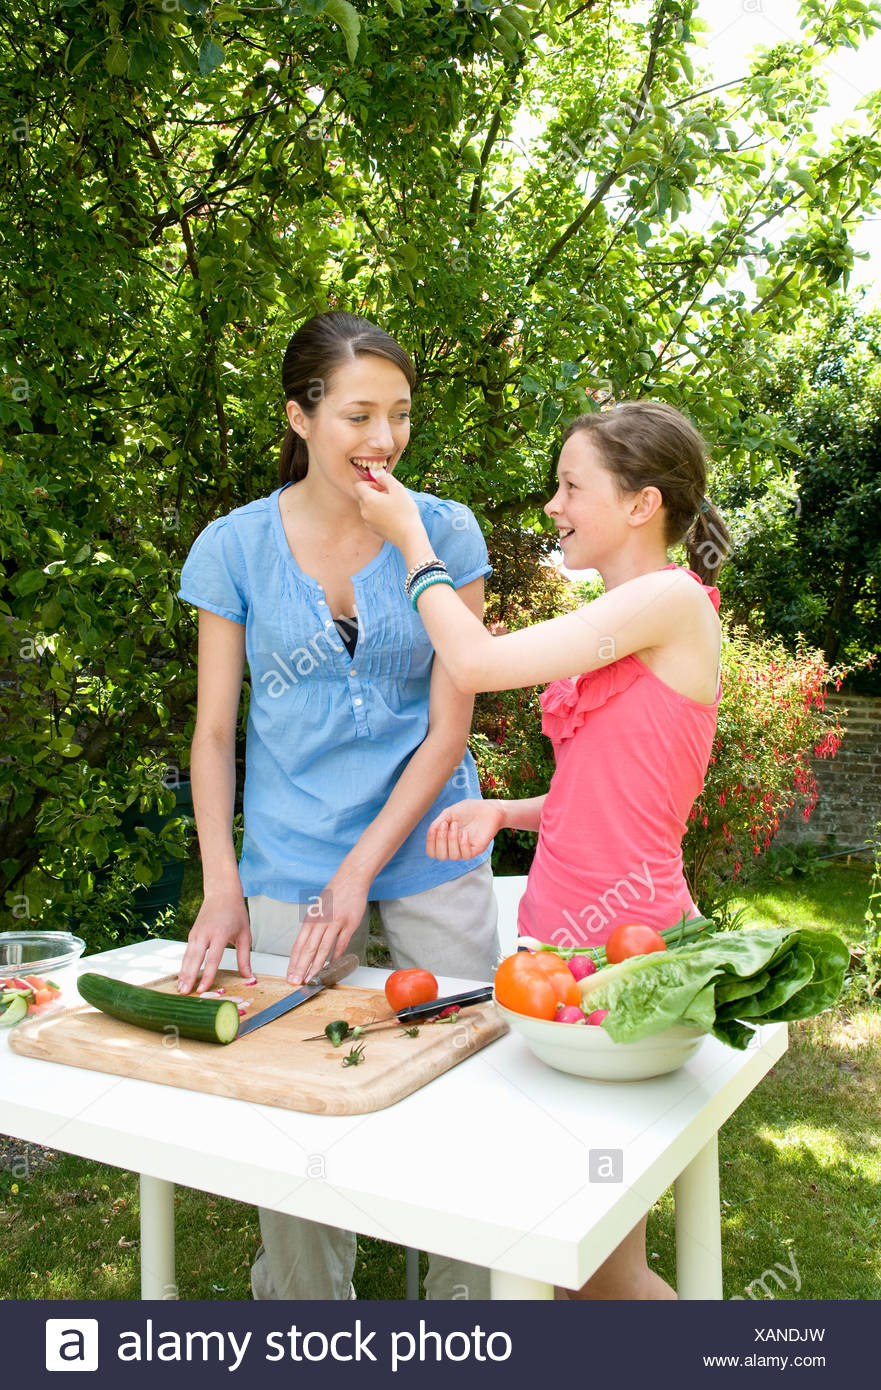 Daughter feeds mother salad, outdoors - Stock Image